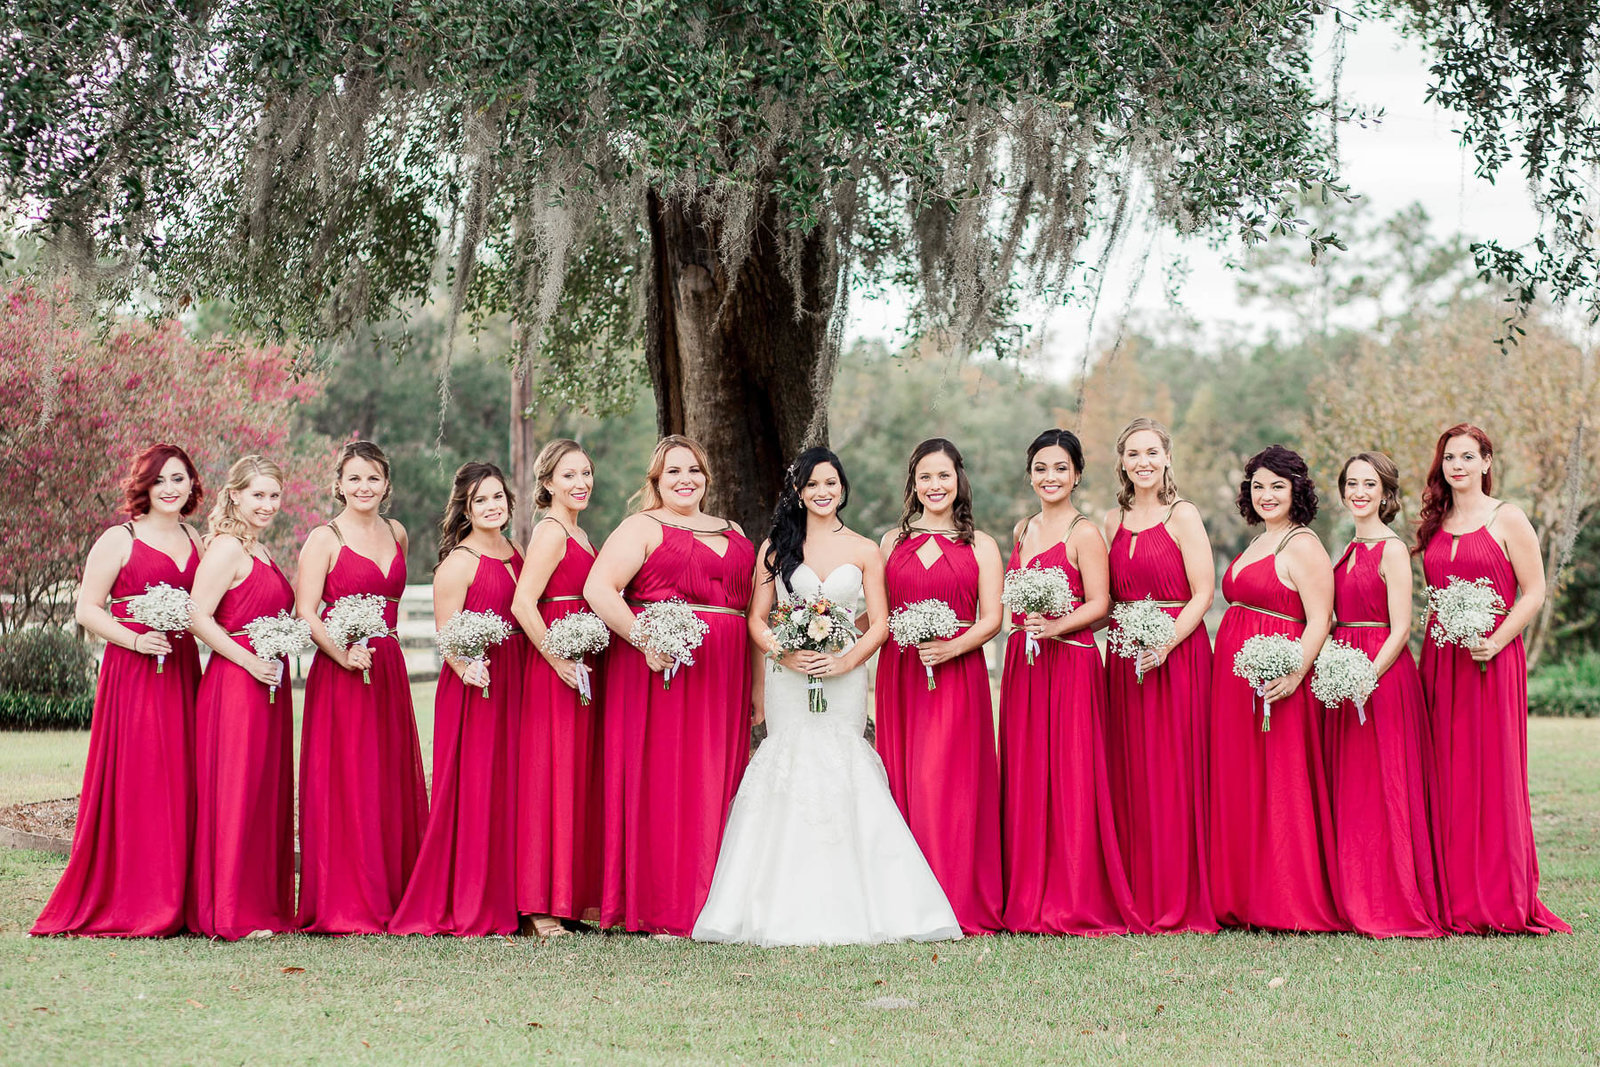 Bride and bridesmaids pose together, Boals Farm, Charleston Wedding Photography